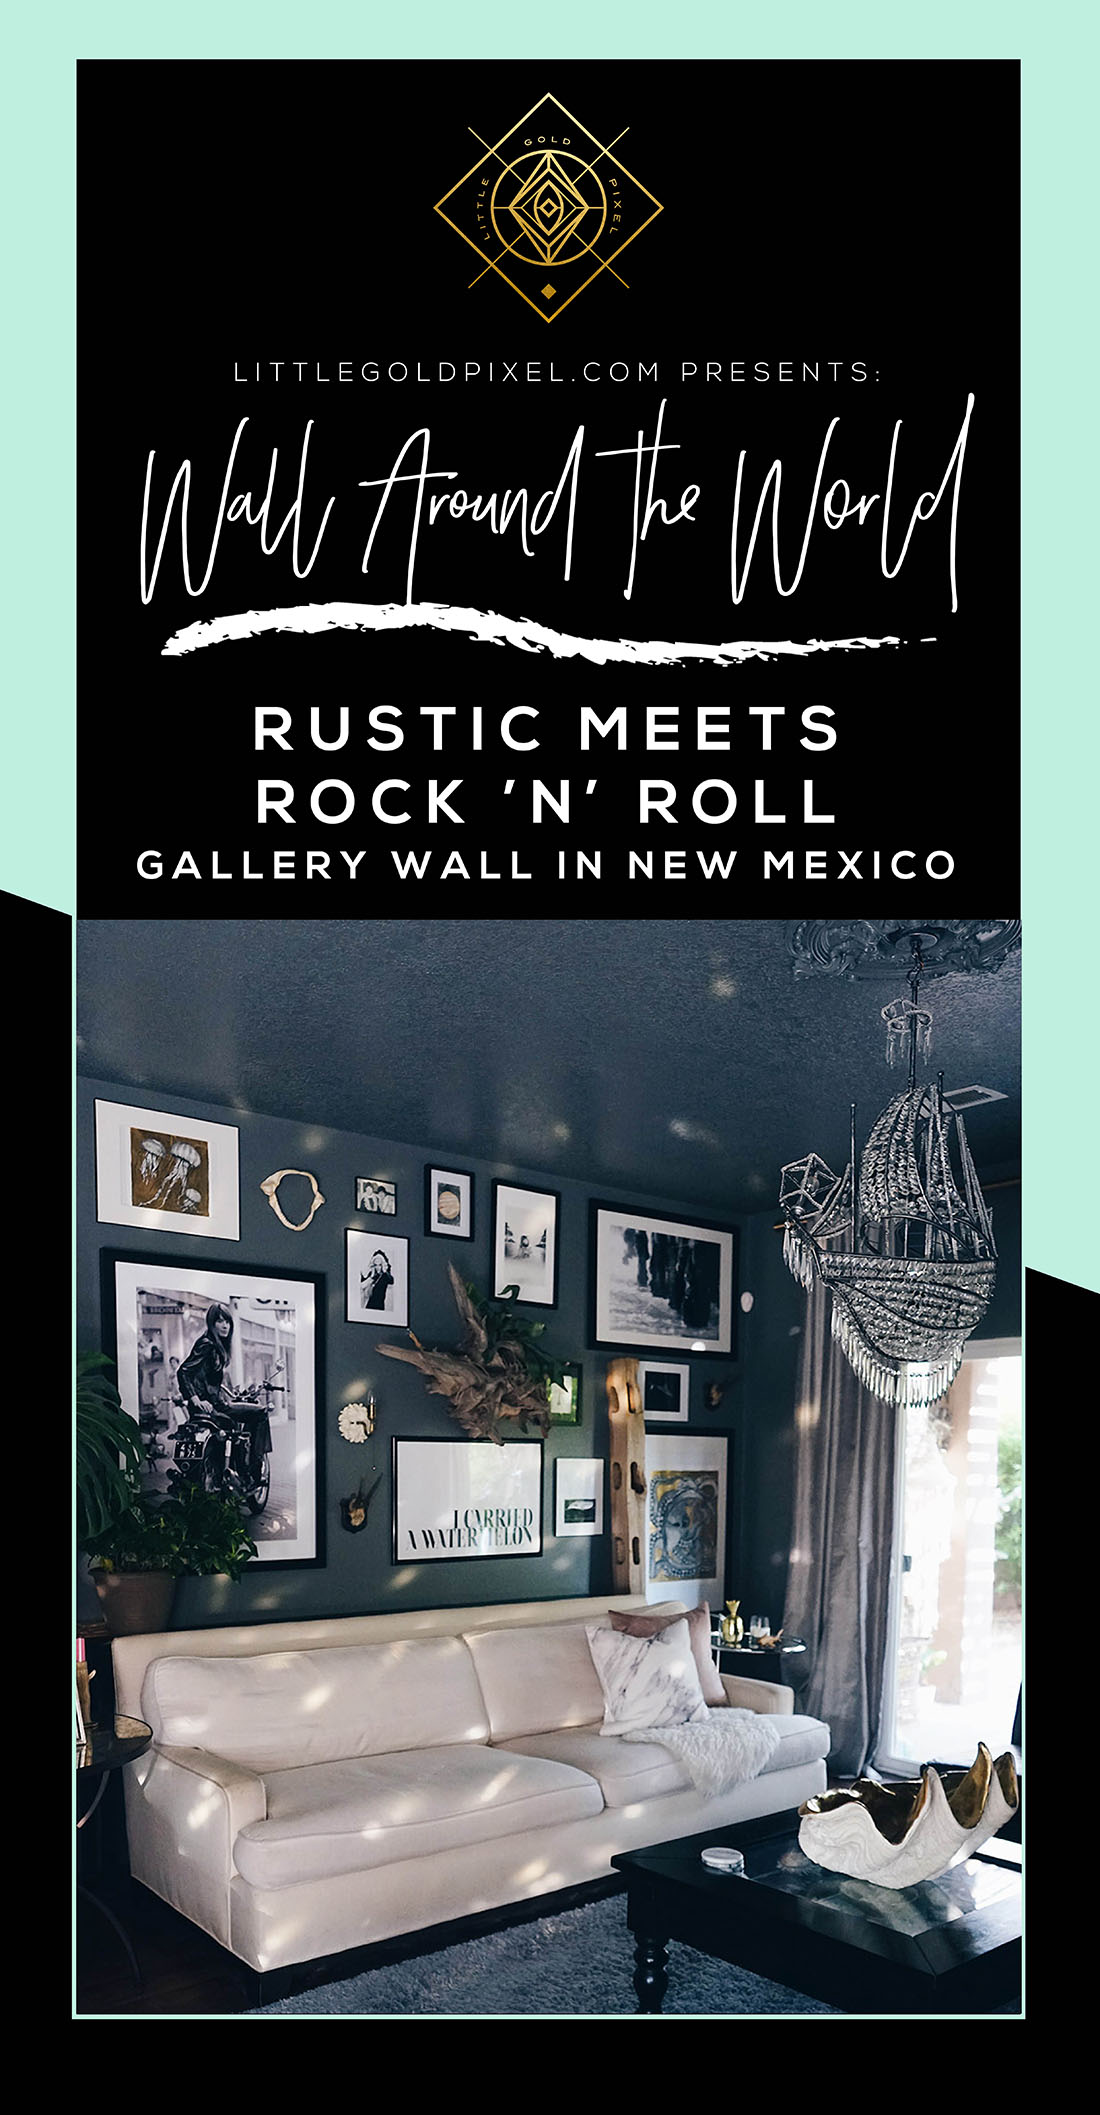 Wall Around the World: A Gallery Wall Series by Little Gold Pixel • Part 6: Rustic Meets Rock 'n' Roll Gallery Wall in New Mexico • Photos © Nichol Naranjo